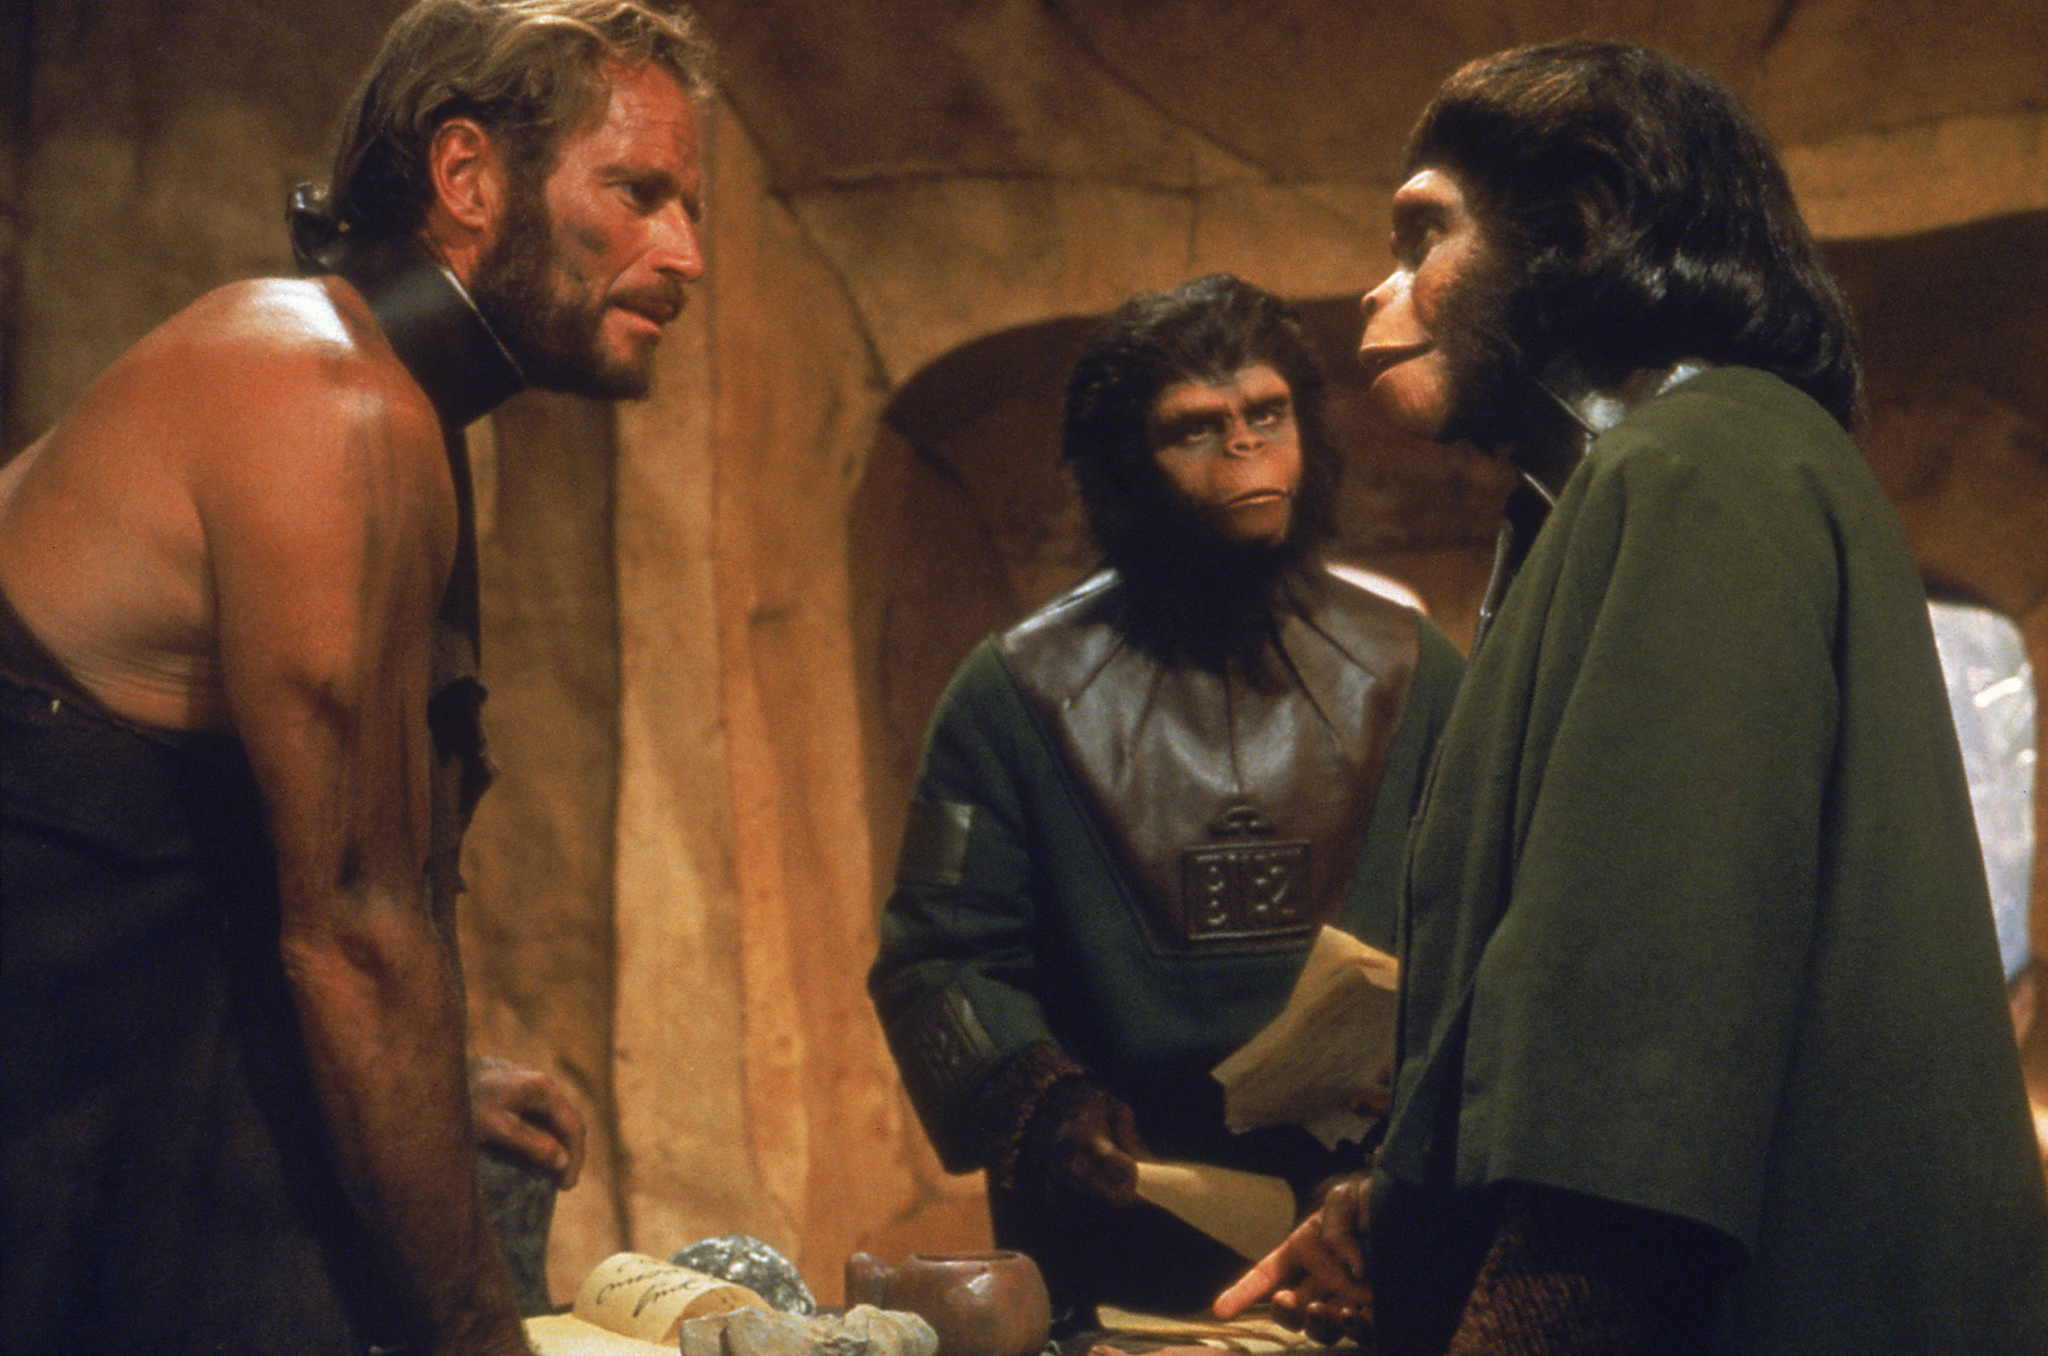 Sci-fi movie: Planet of the Apes